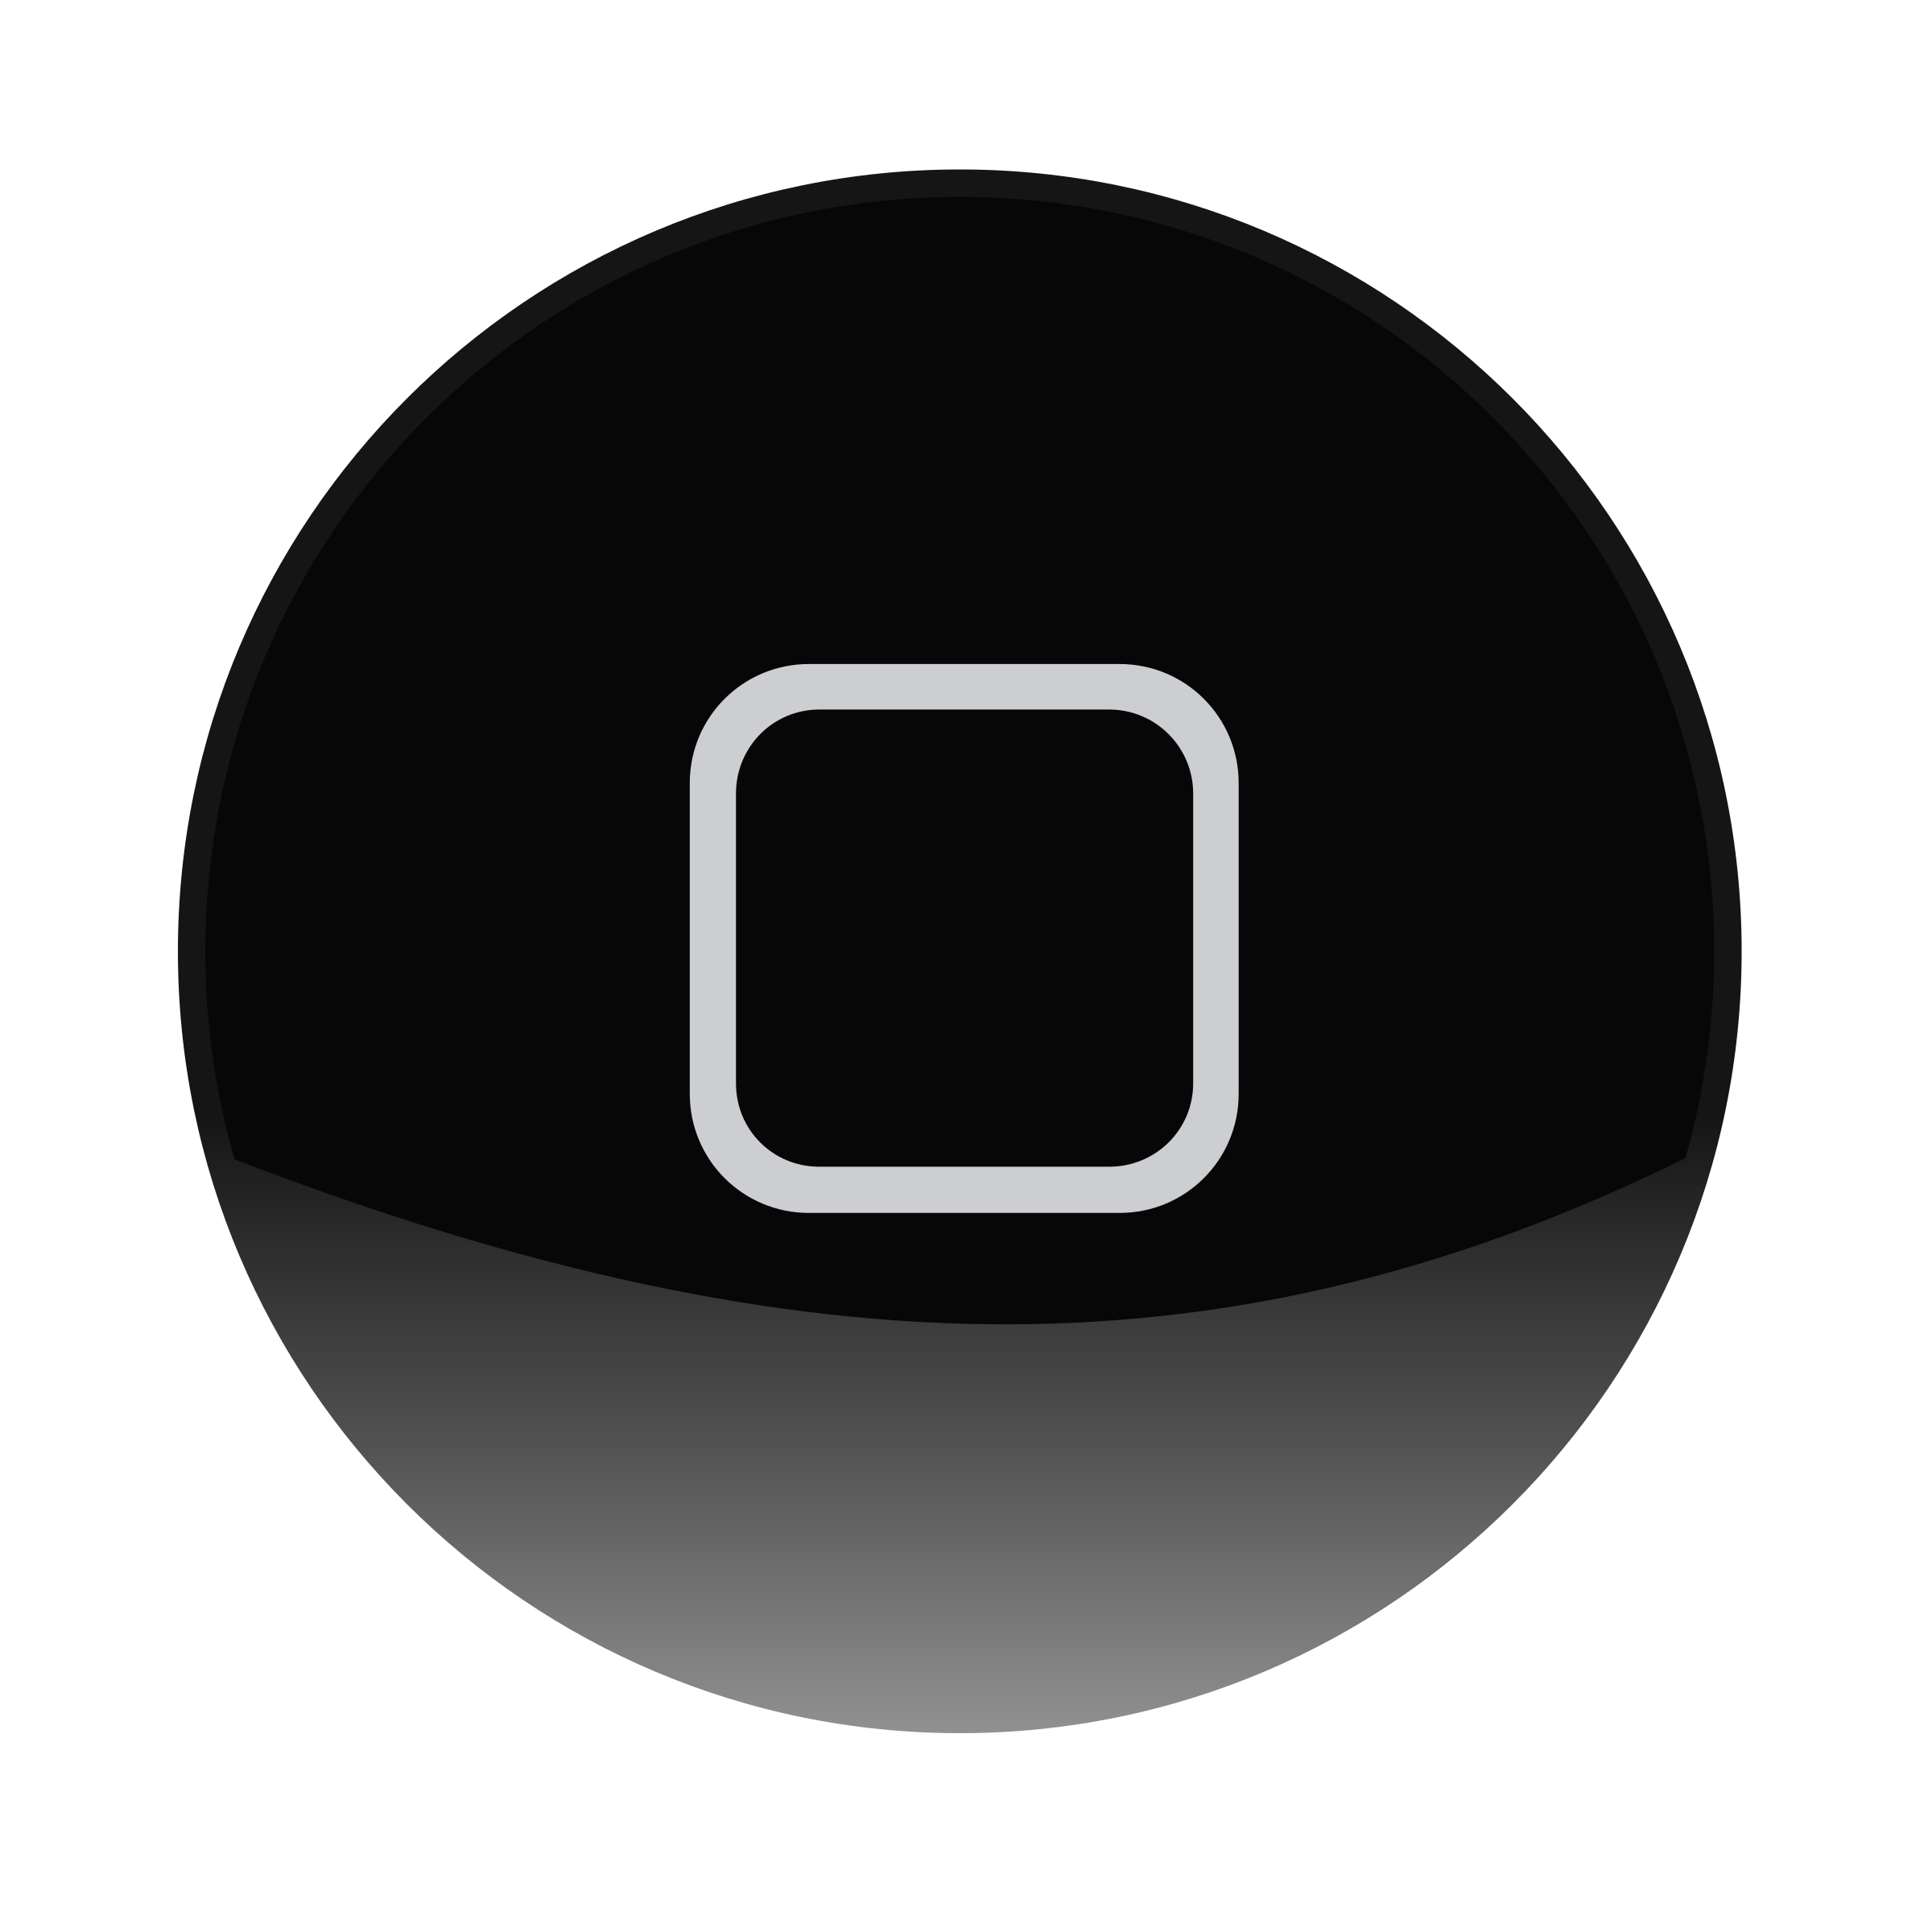 iphone home icon png